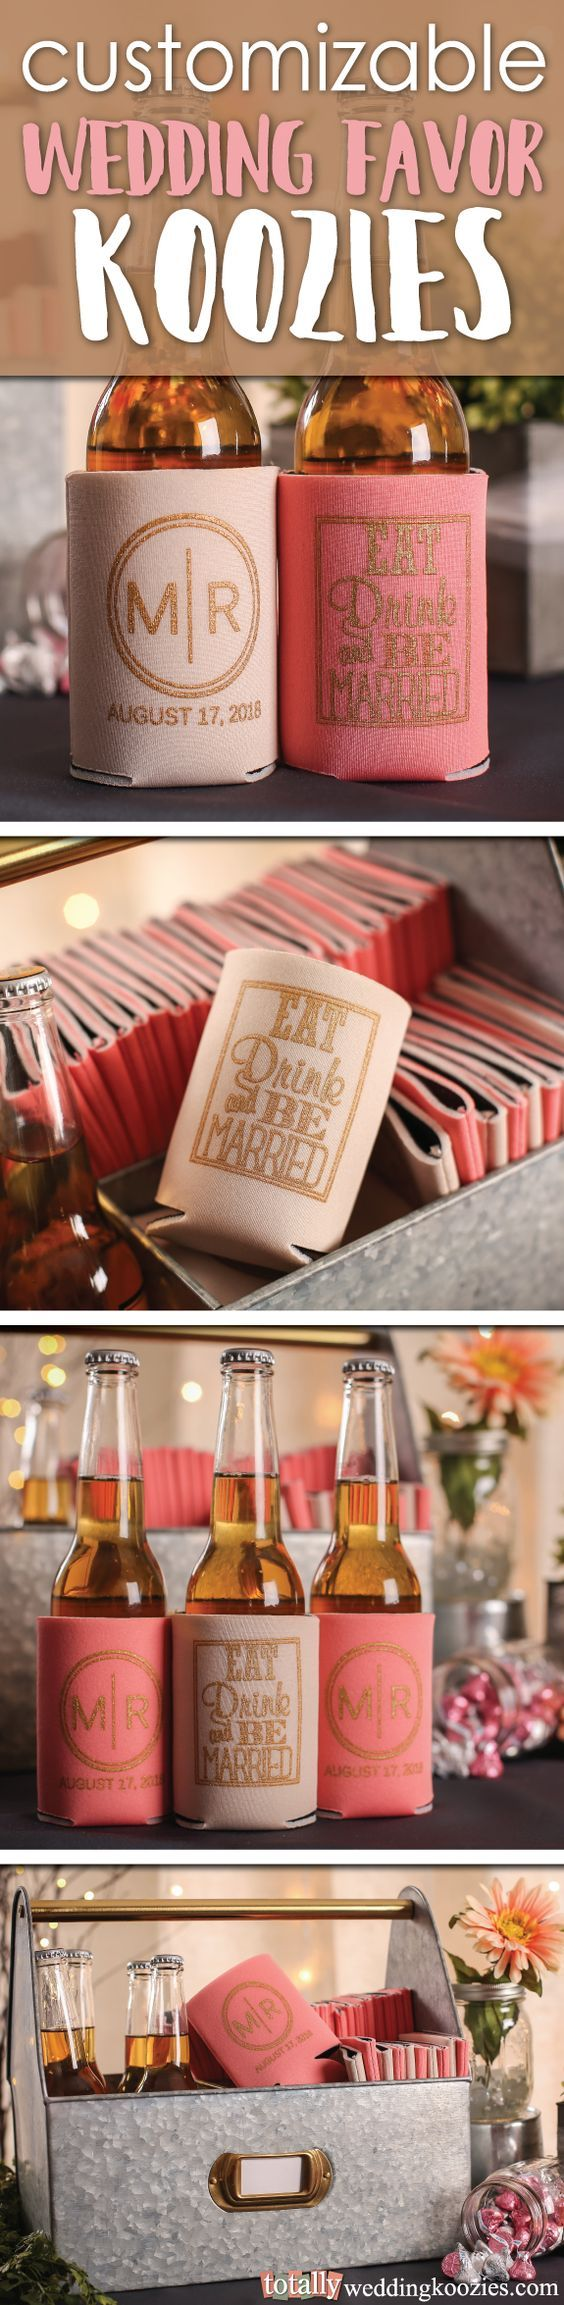 Our customizable wedding koozies offer a unique and fun way to thank your guests! This product is offered in 45 product colors with 23 imprint colors to choose from, your options are endless! Every wedding koozie order also comes with a FREE complimentary bride & groom koozie!  Use coupon code PINNER10 and receive 10% off your wedding koozie order! Sale applies to piece price only, not valid with other coupon codes and expires September 30, 2016!